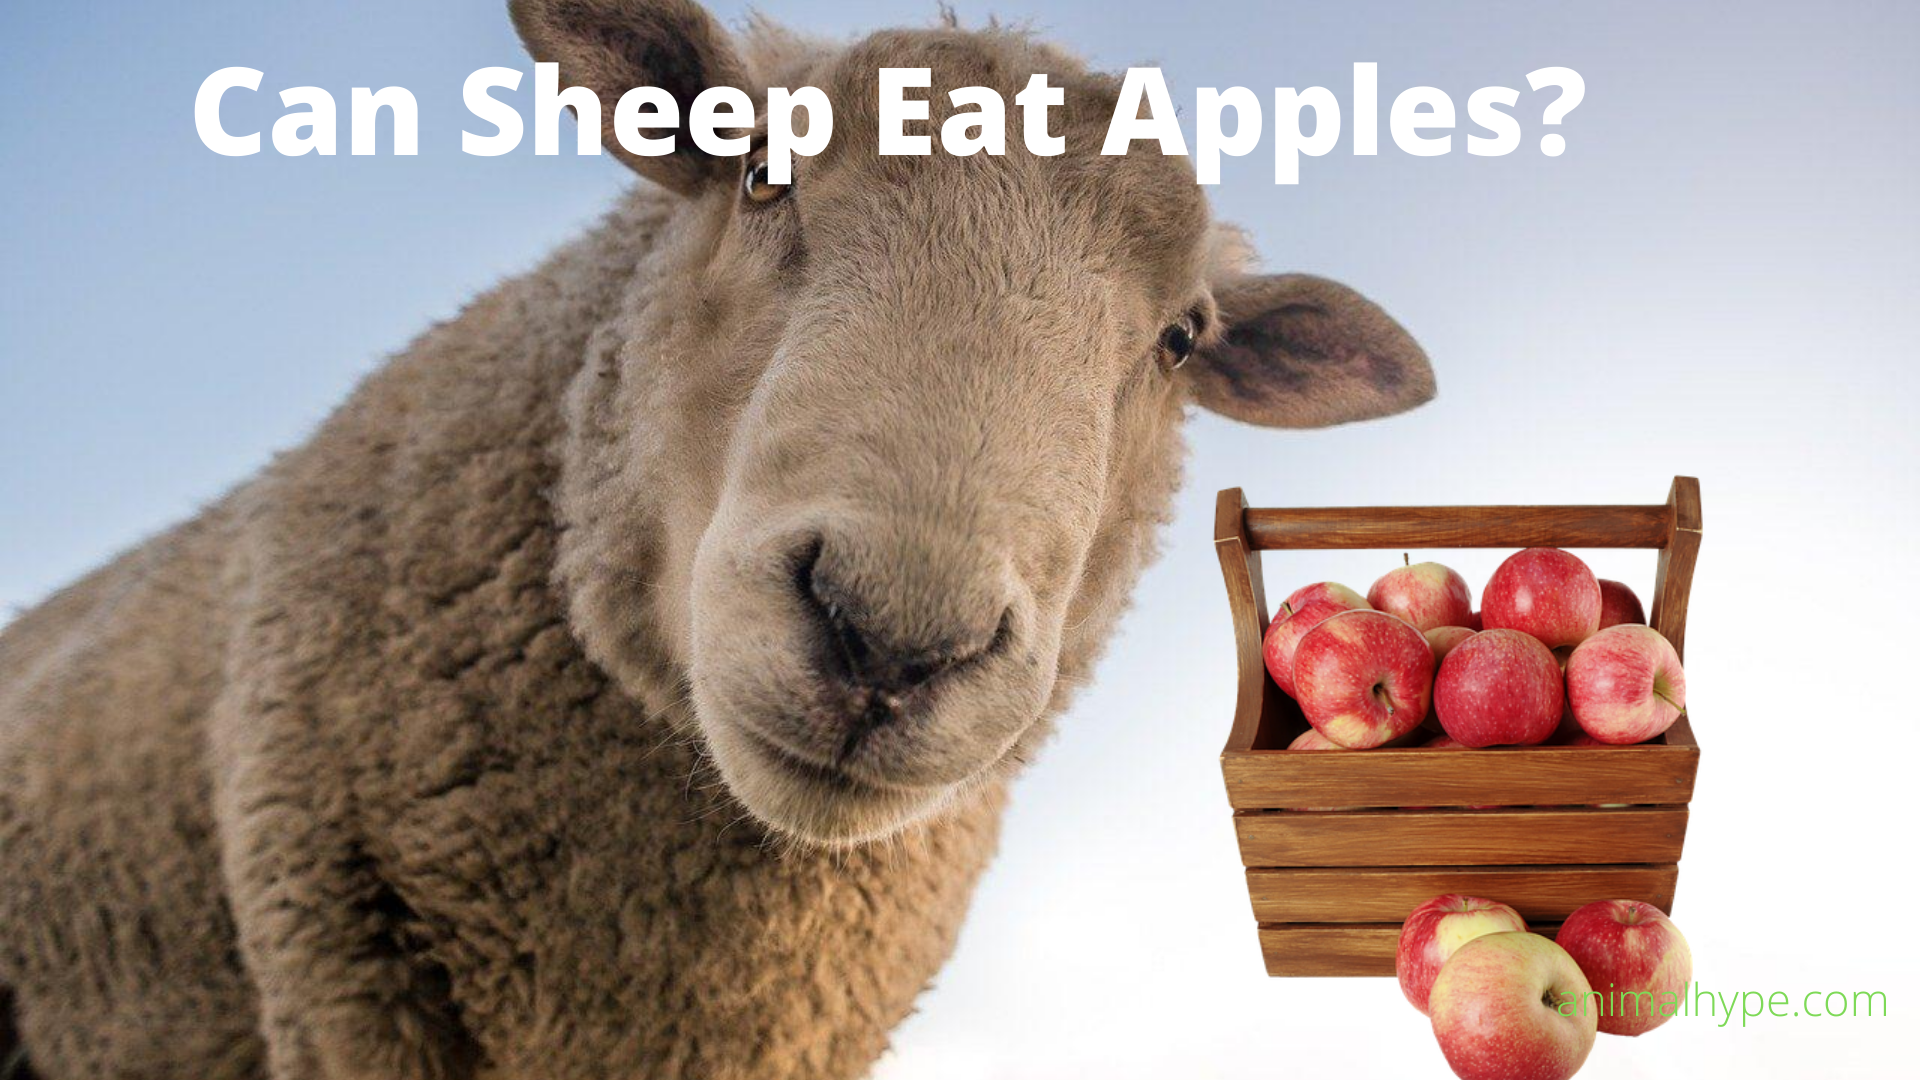 Can Sheep Eat Apples